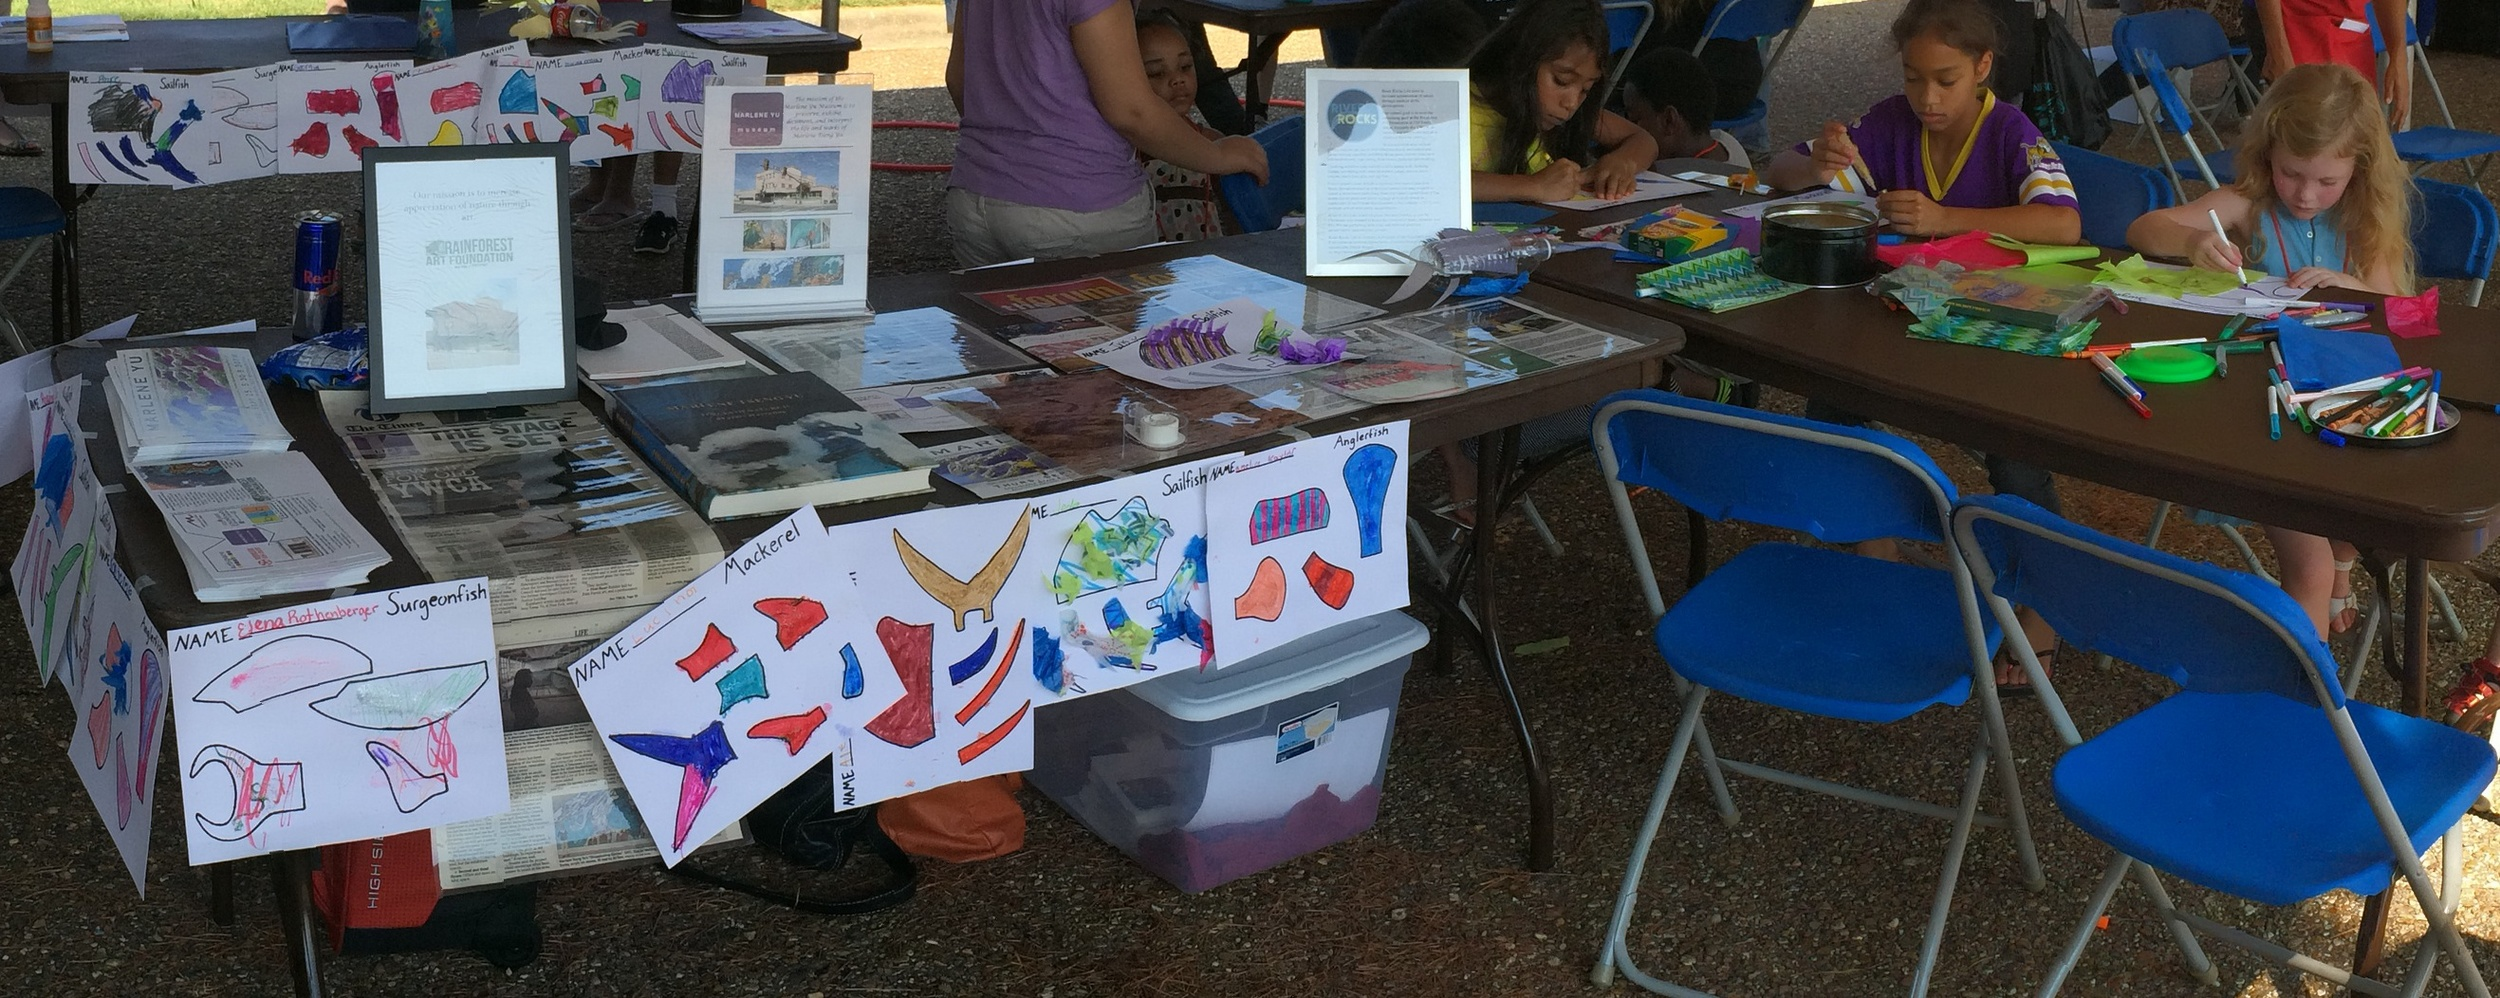 Kids designed fins at Super Safety Saturday earlier this year as part of the project.